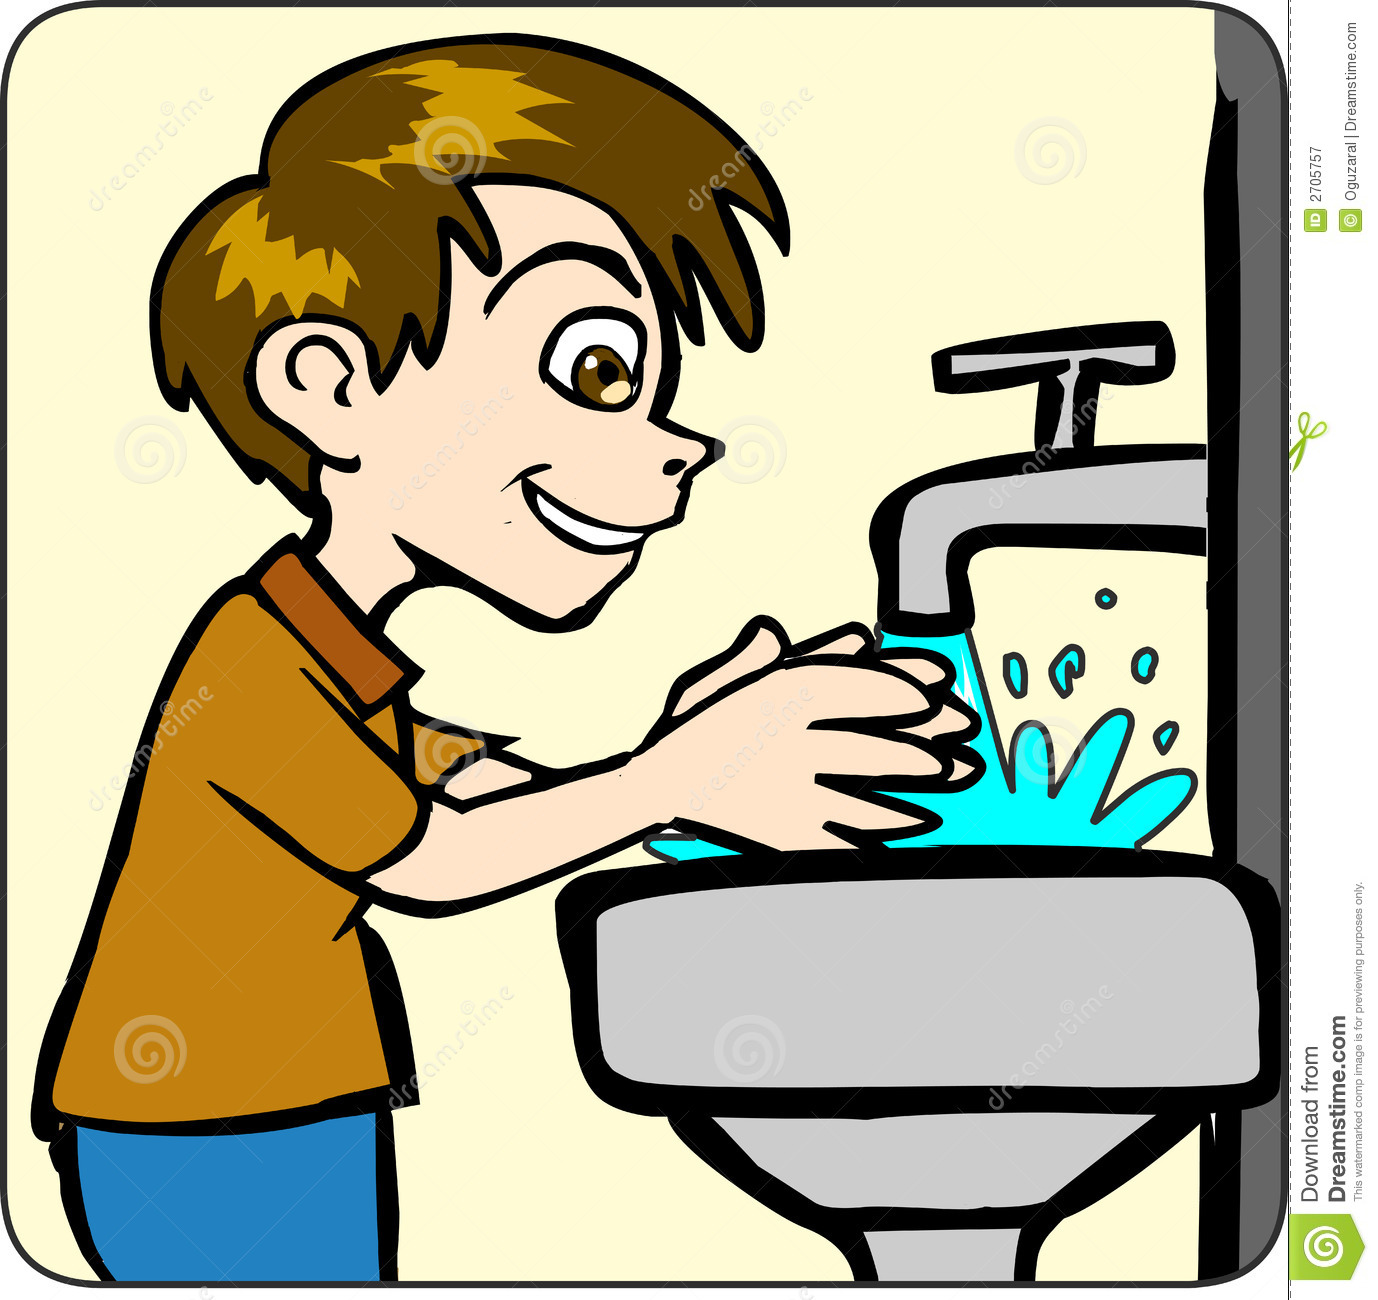 Hand Washing Cartoon Clipart | Free download on ClipArtMag